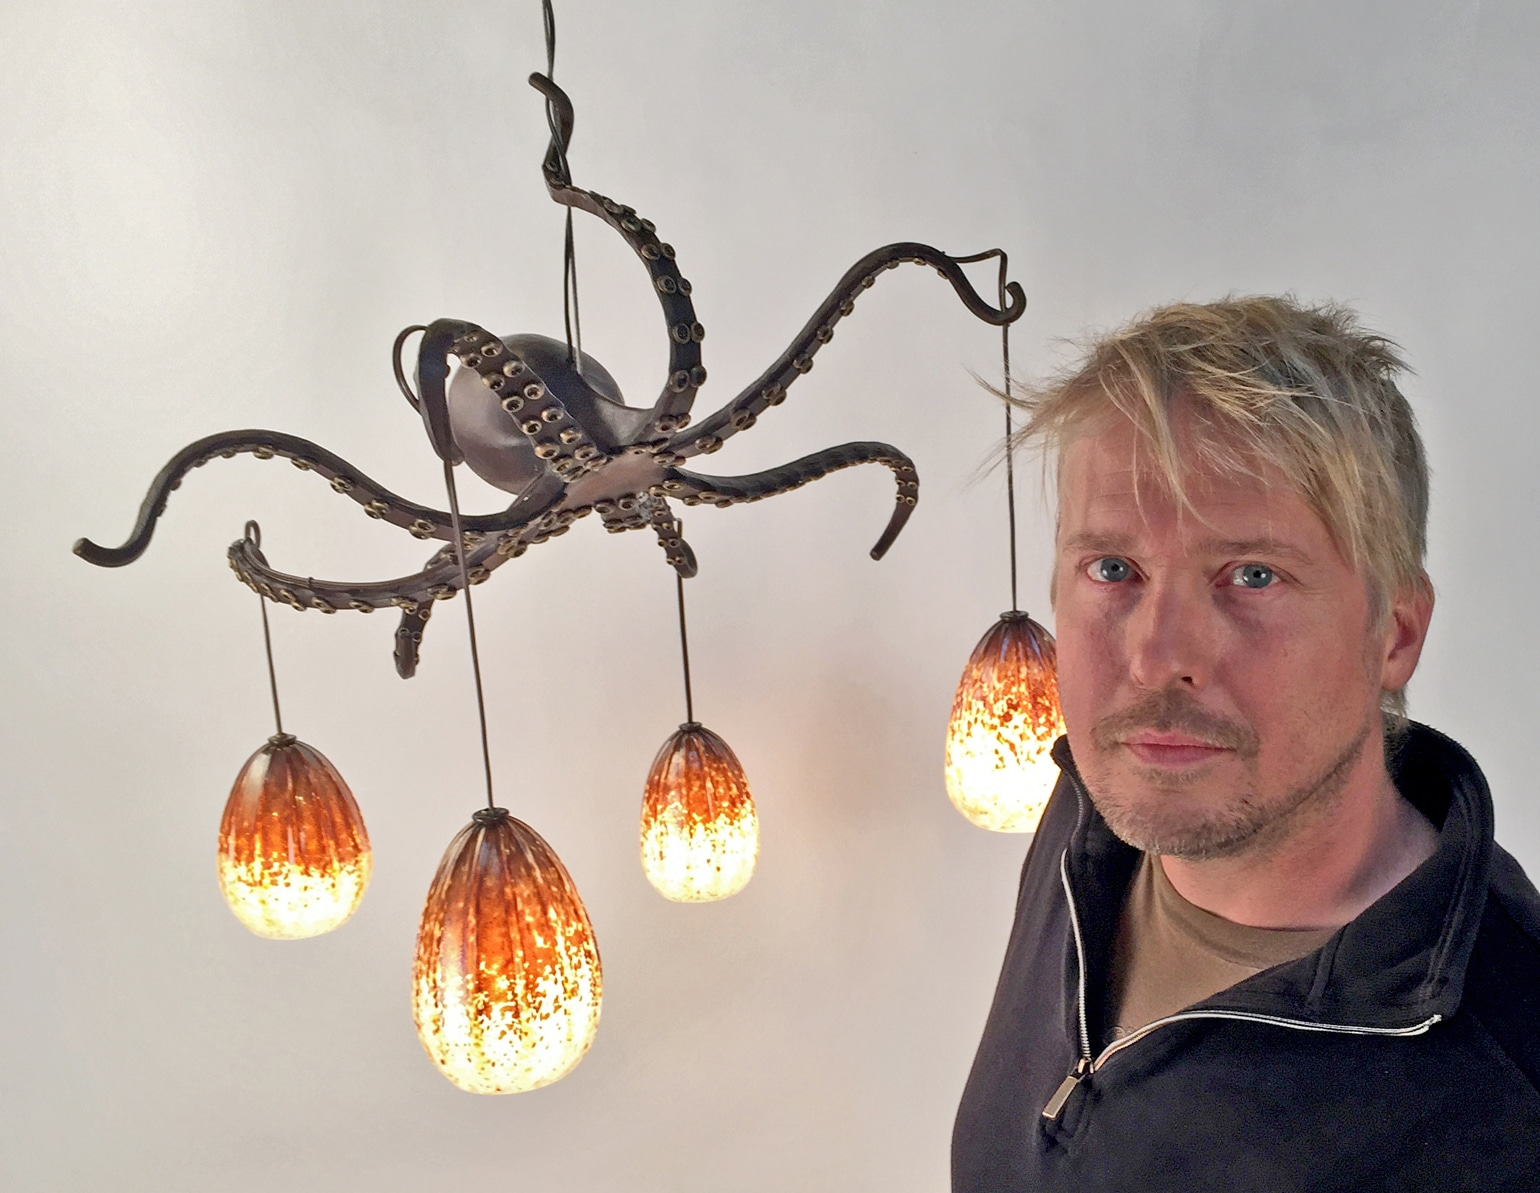 Blacksmith, Forged, Custom, Design, Daniel Hopper Design, Iron, Steel, Bronze, Lighting, Chandelier, Octopus, Artist